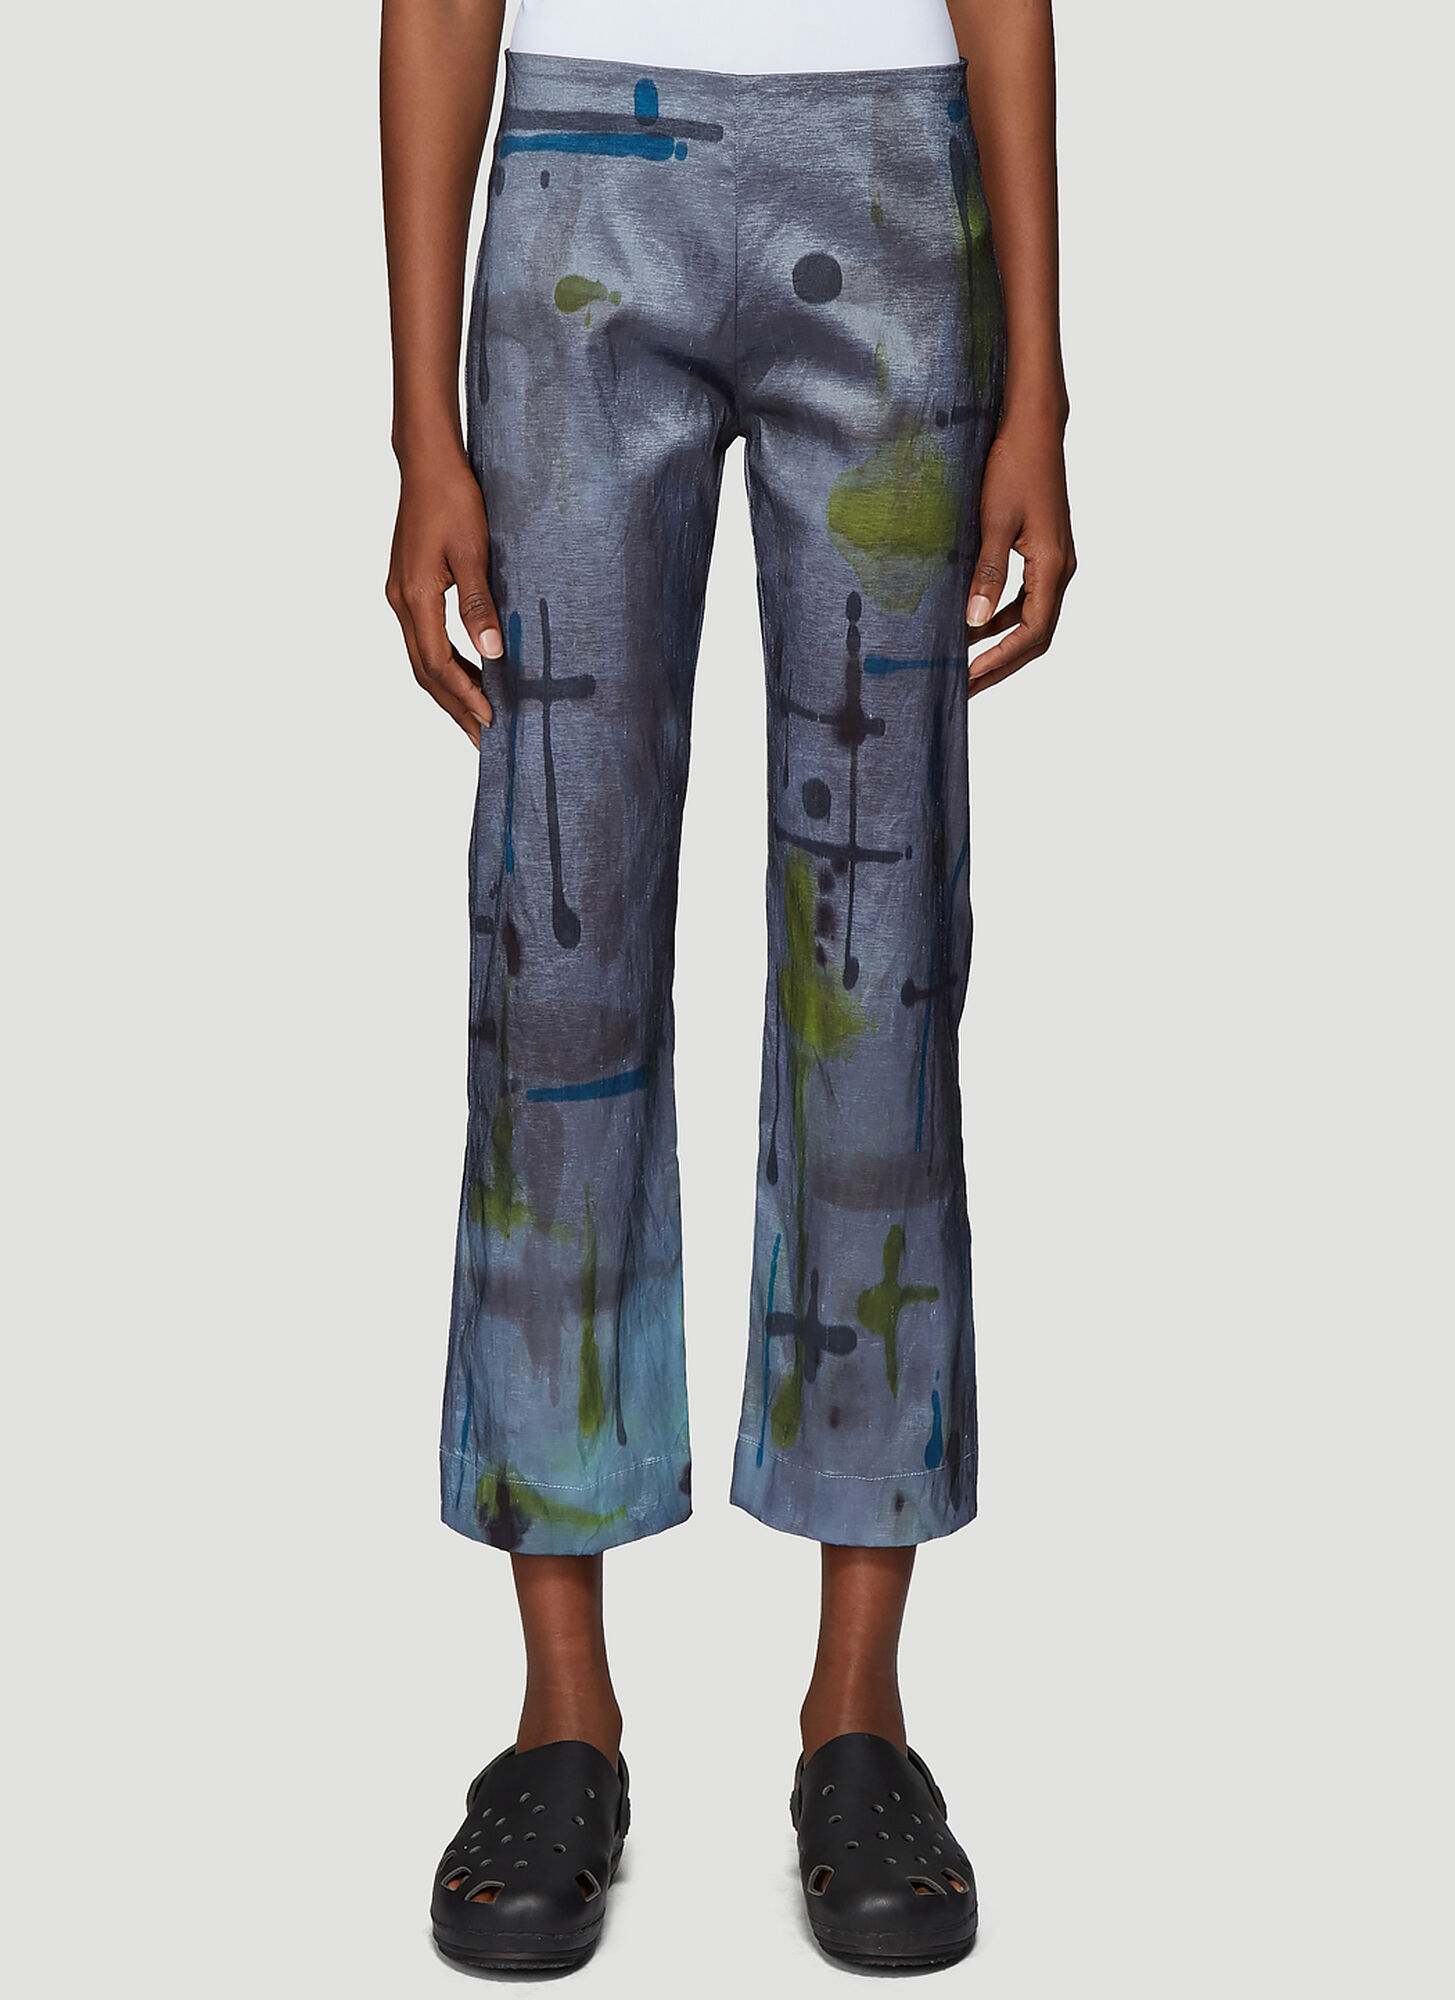 Collina Strada Mariposa Pants in Blue